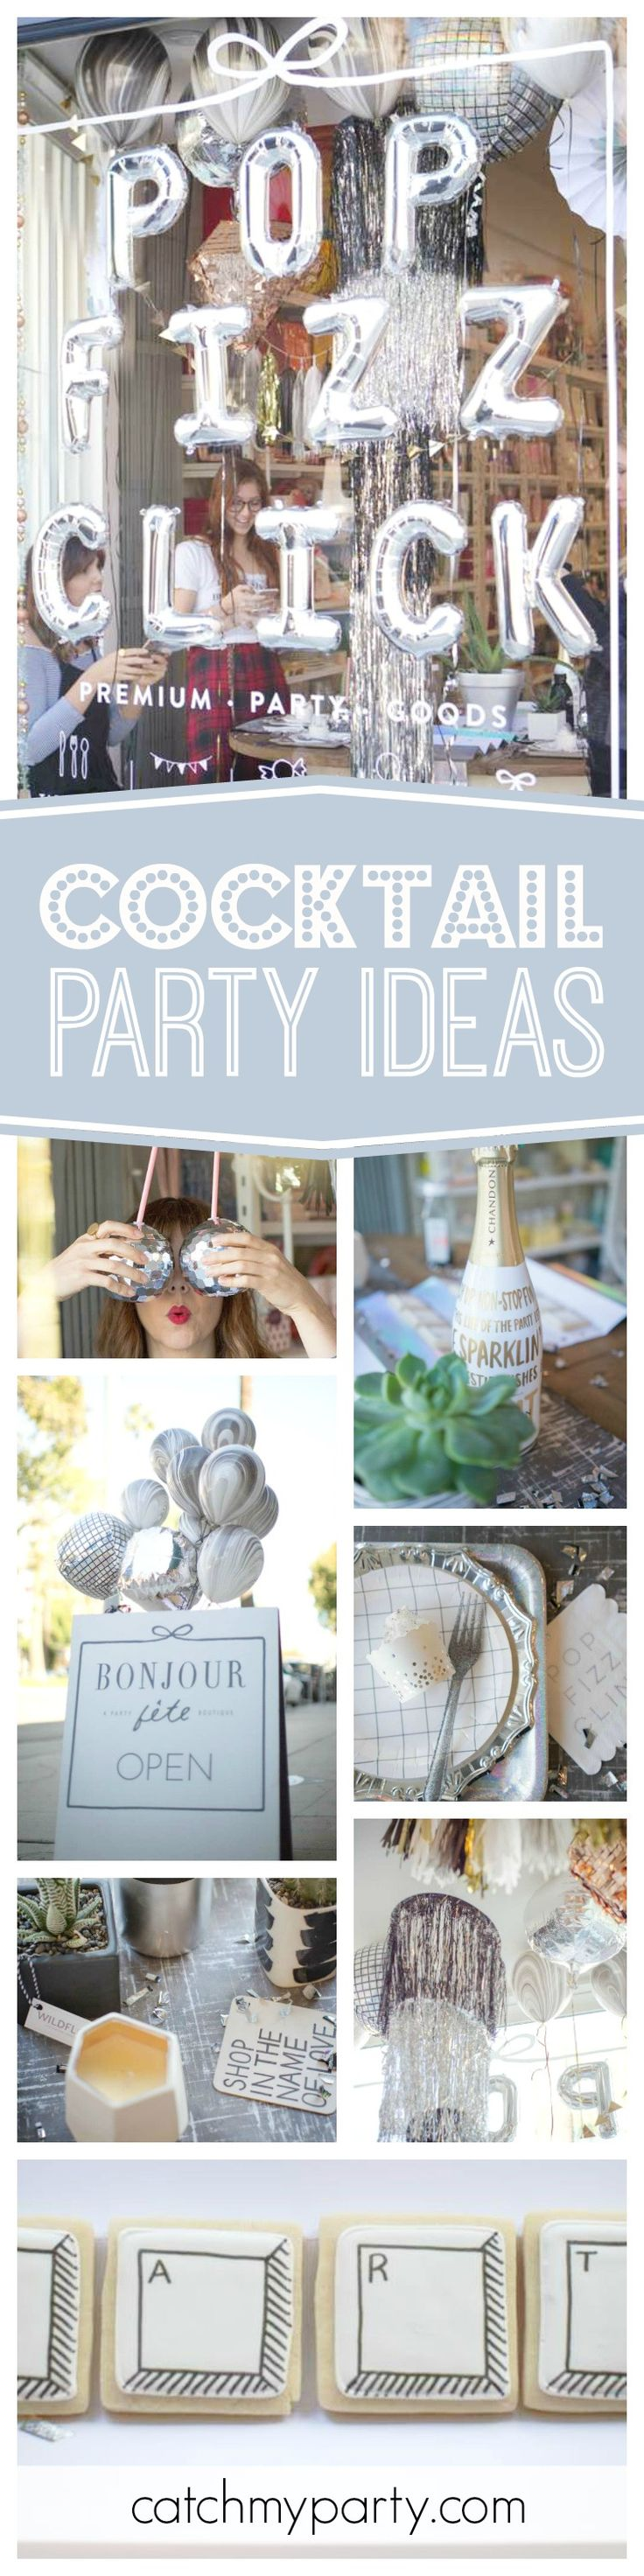 Check out this fabulous Cyber Monday Cocktail party! Love the decorations!! See more party ideas and share yours at CatchMyParty.com